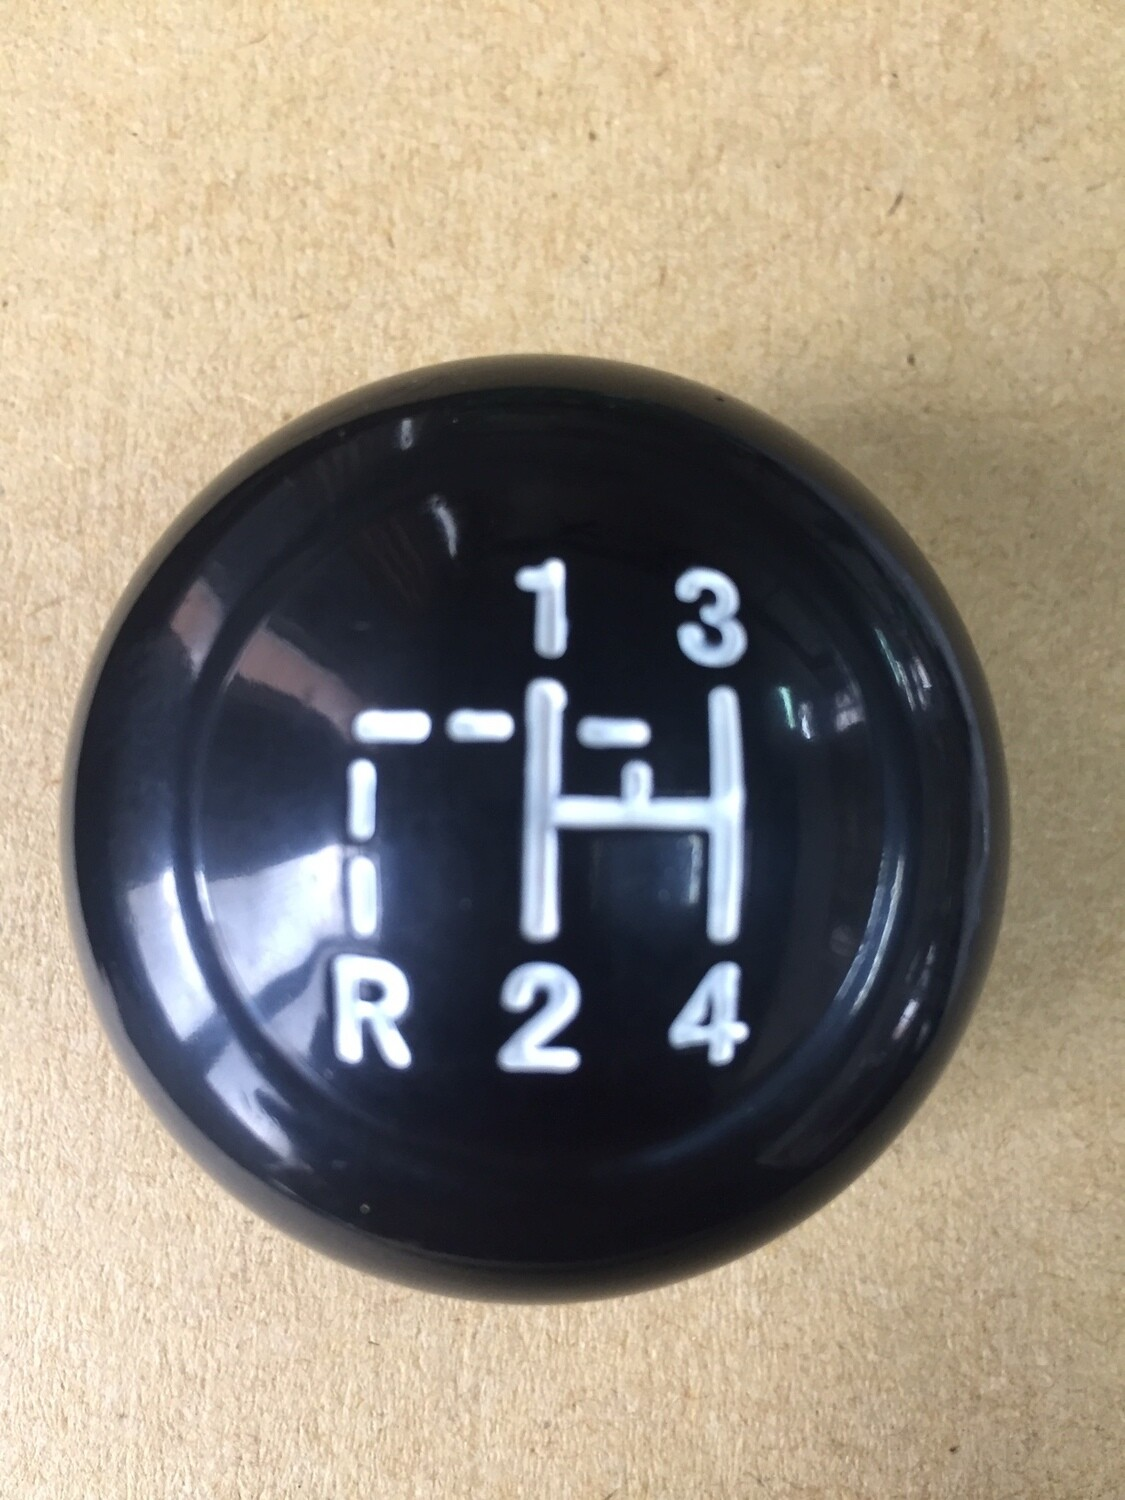 PULL-UP REVERSE PATTERN SHIFTER KNOB